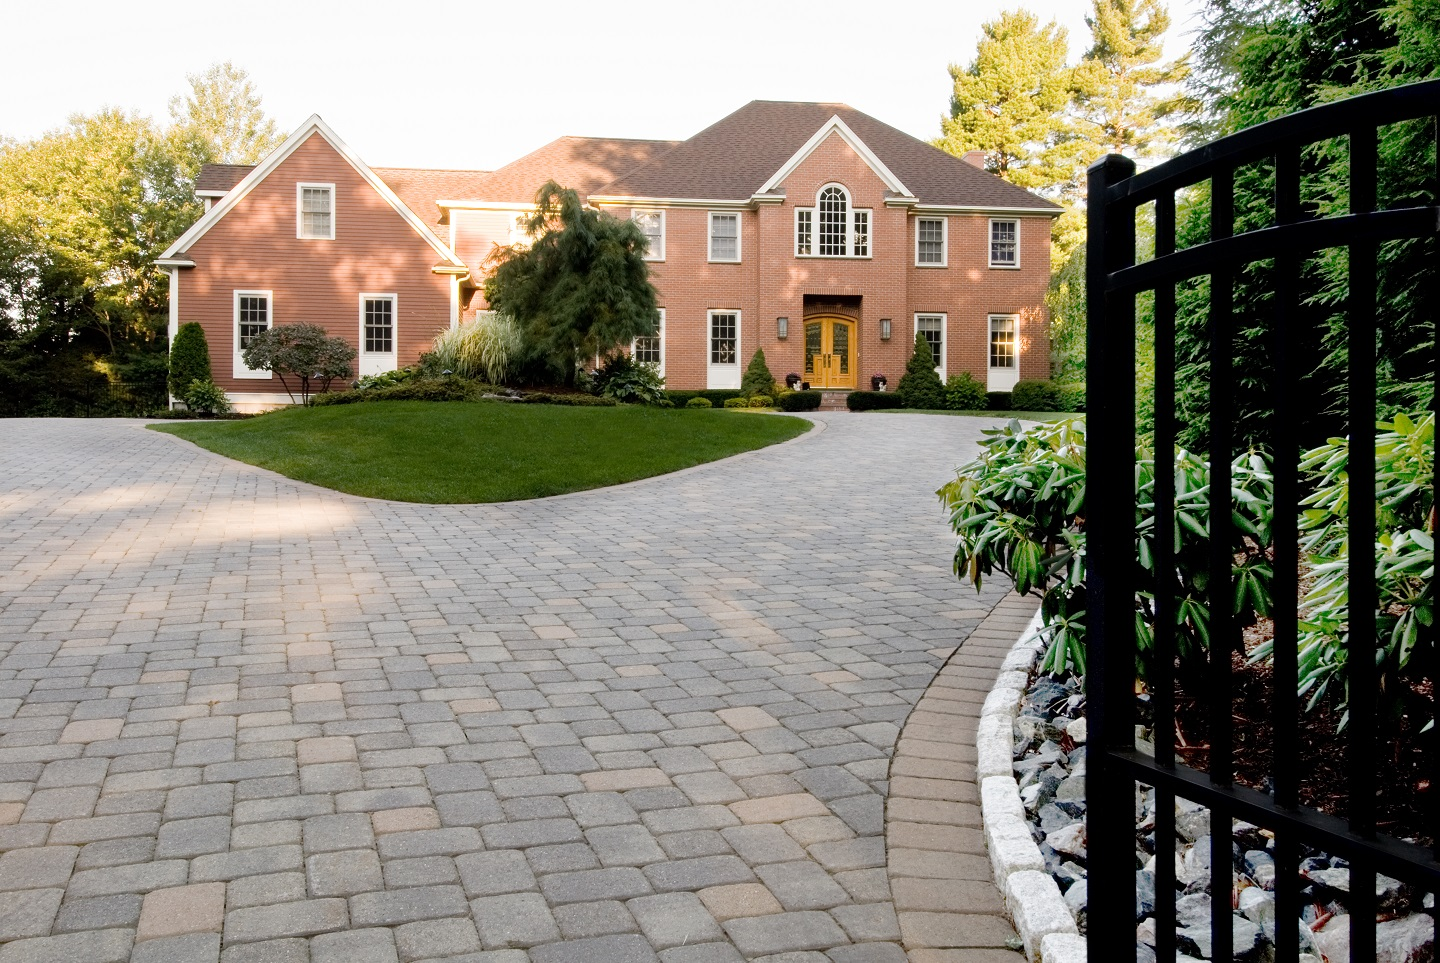 Cambridge, MA landscapers near me with top driveway pavers